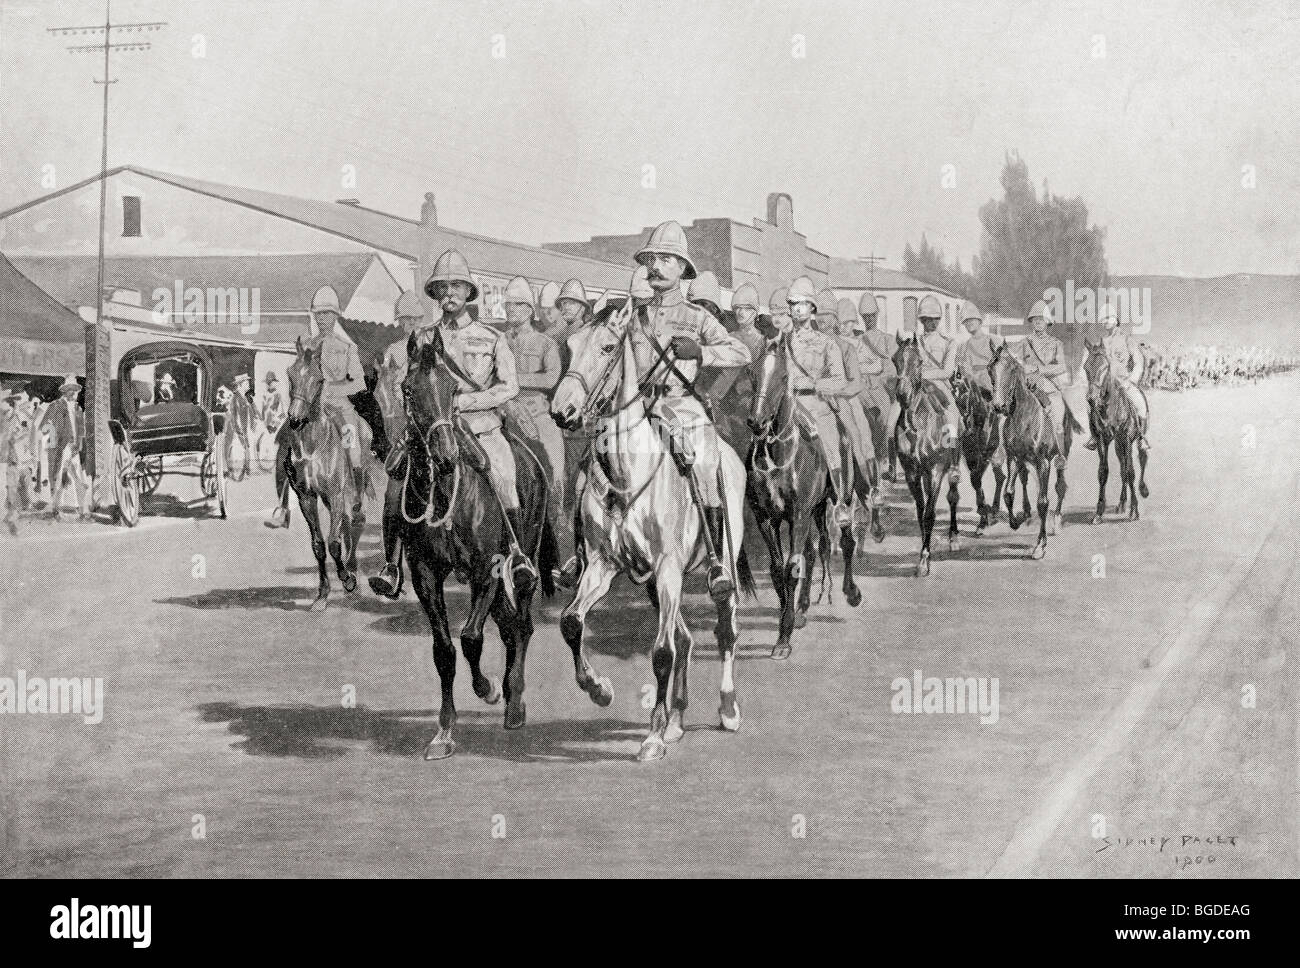 Lord Roberts entry into Pretoria, South Africa, June 5th 1900. Field Marshal Frederick Sleigh Roberts, 1st Earl - Stock Image